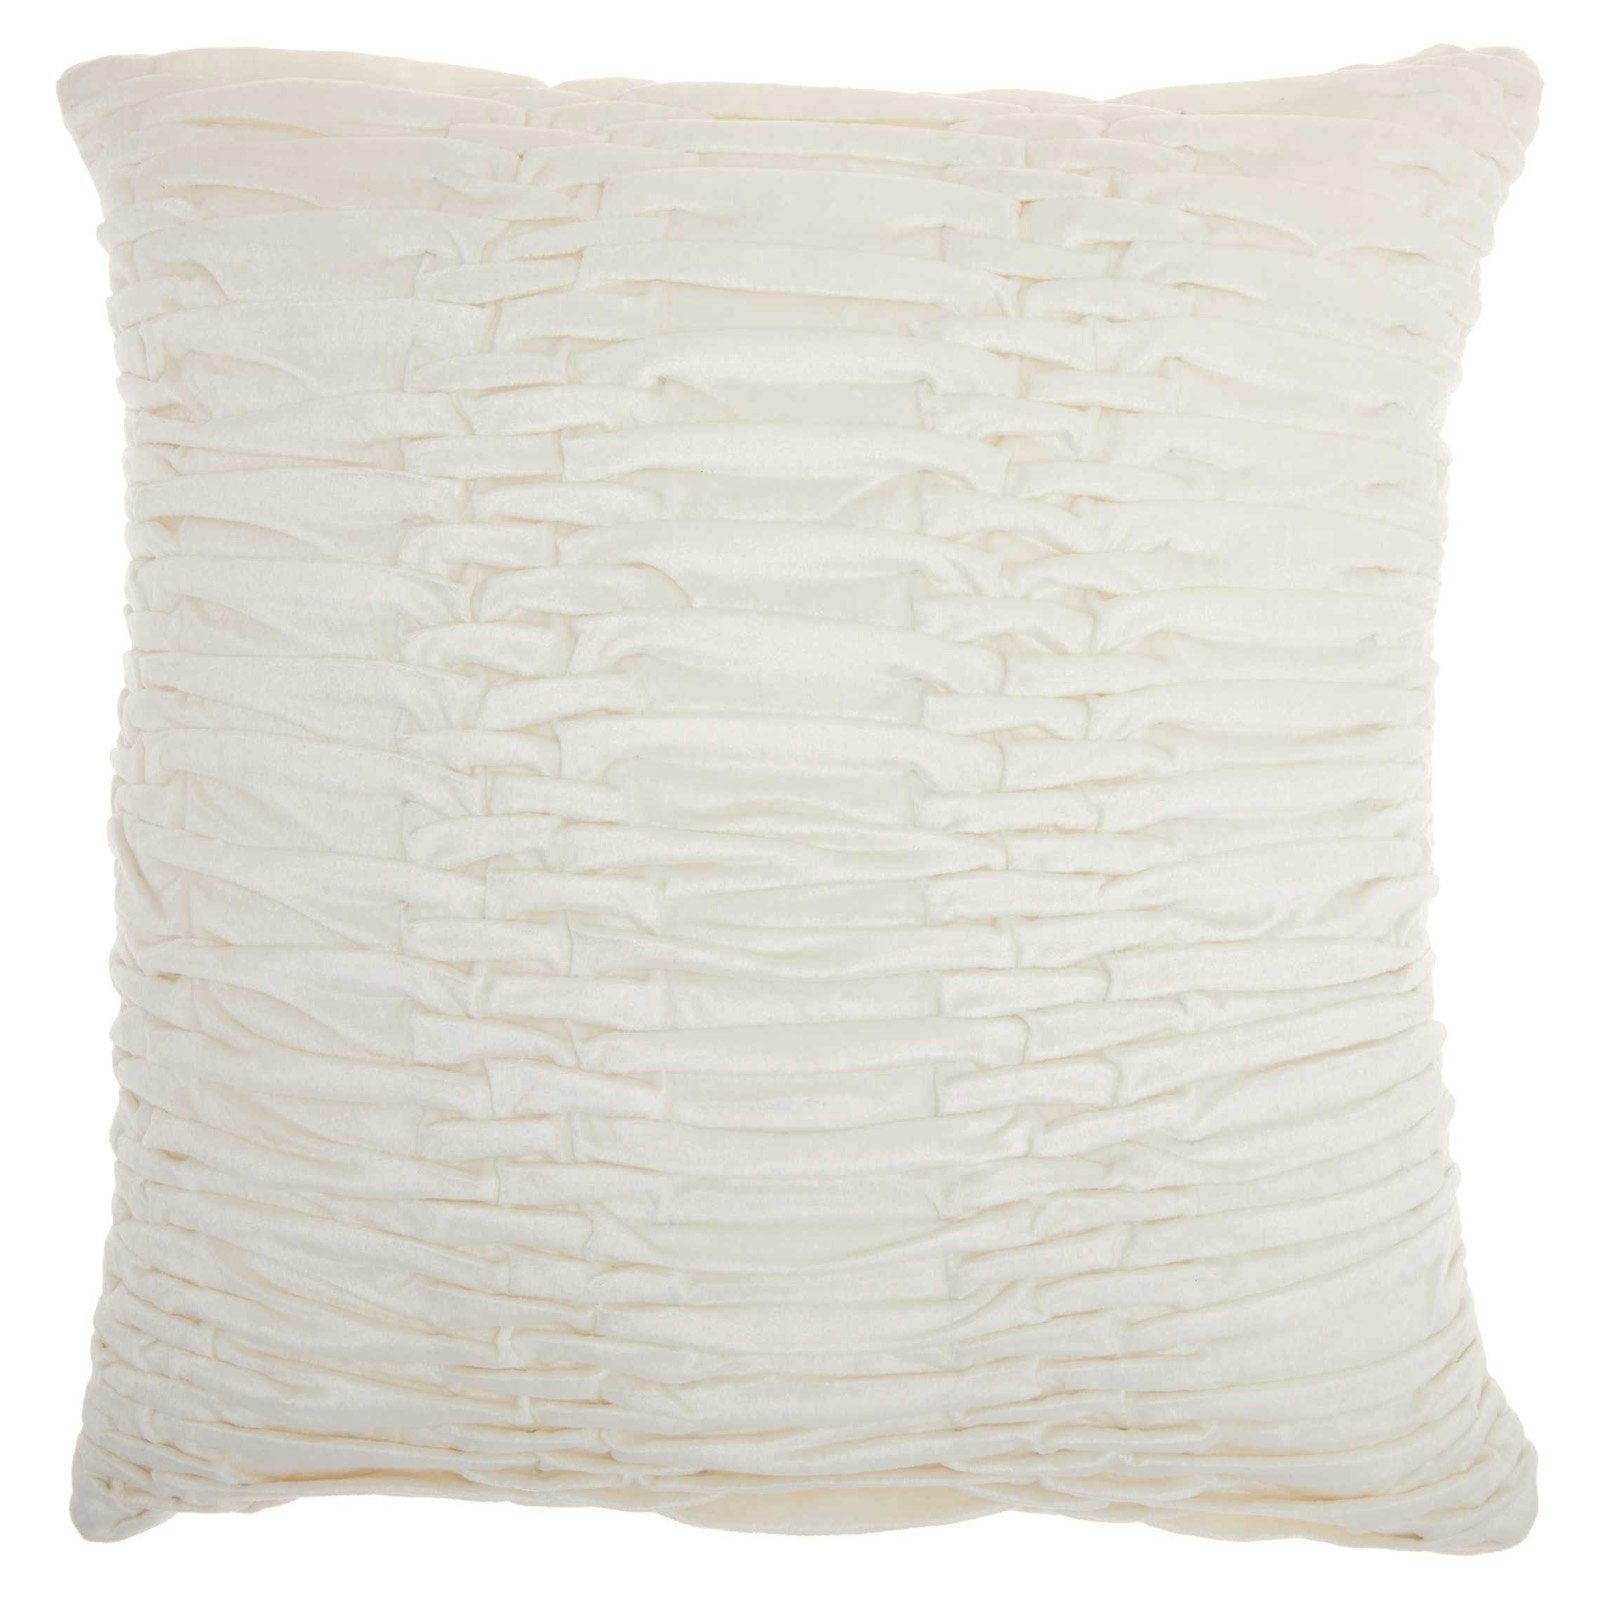 Nourison Life Styles Ruched Velvet Cream Throw Pillow by Nourison